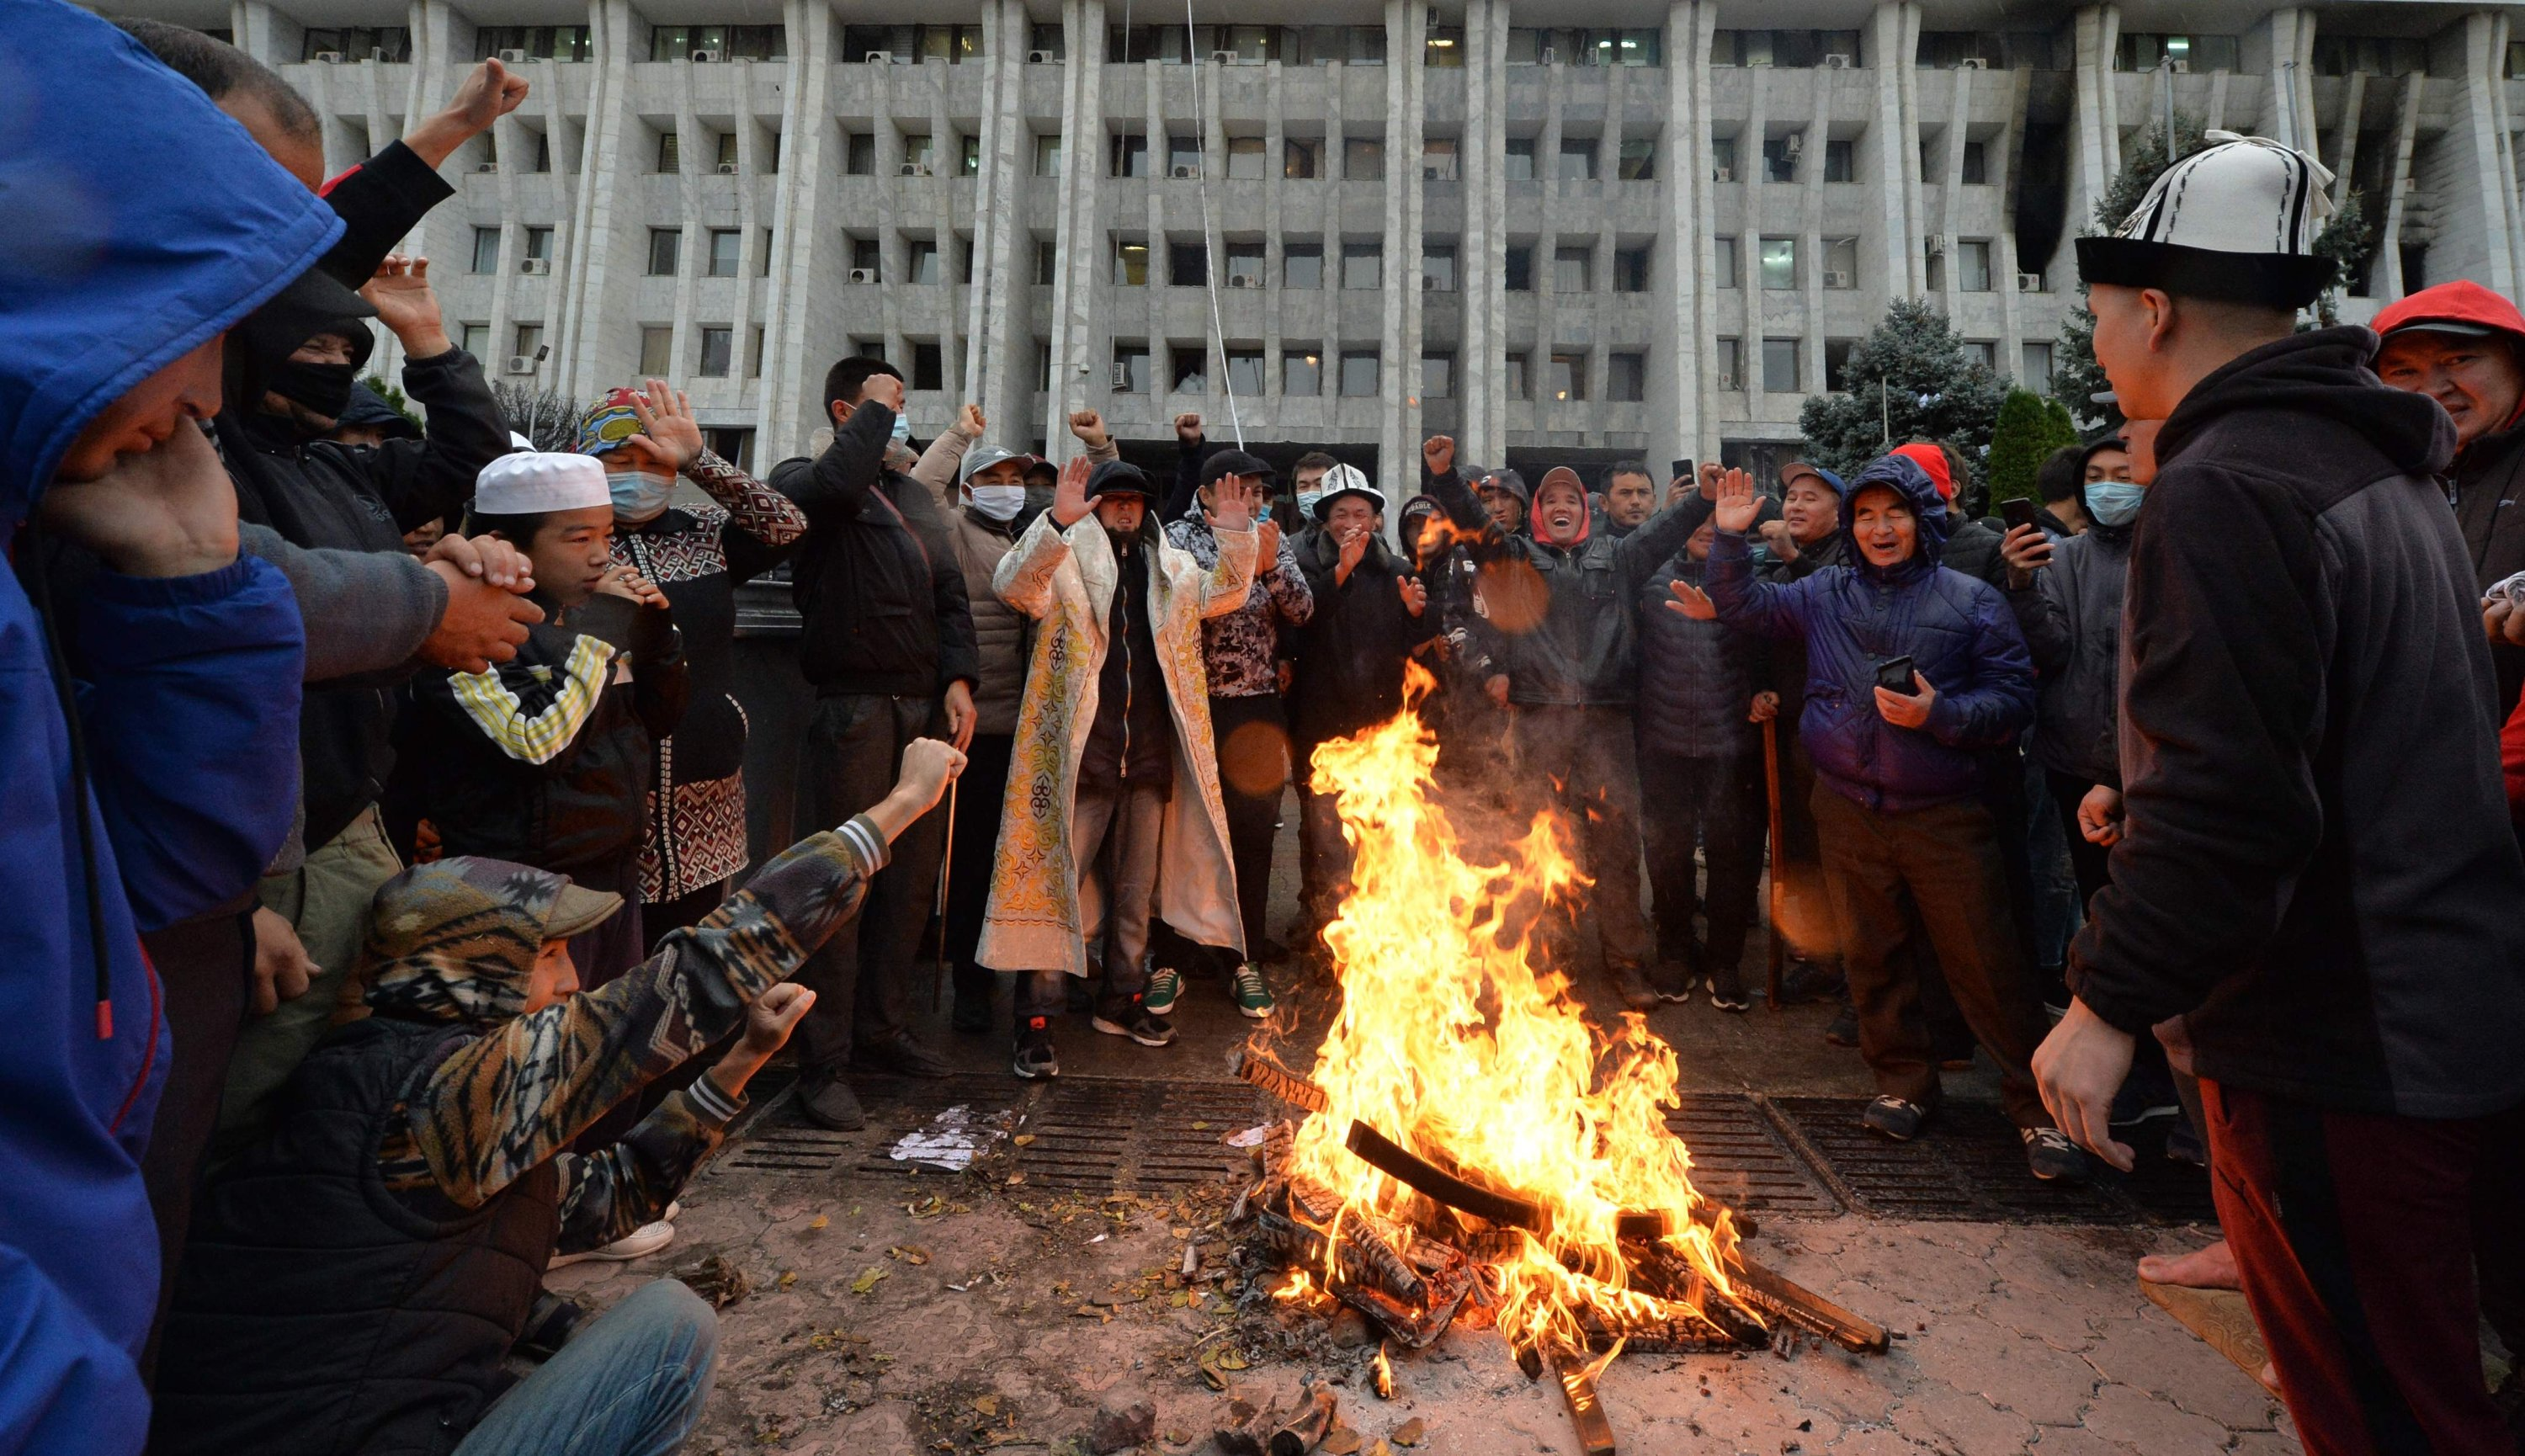 People protesting the results of a parliamentary vote gather by a bonfire in front of the seized main government building, known as the White House, in Bishkek, on Oct. 6, 2020. (AFP Photo)